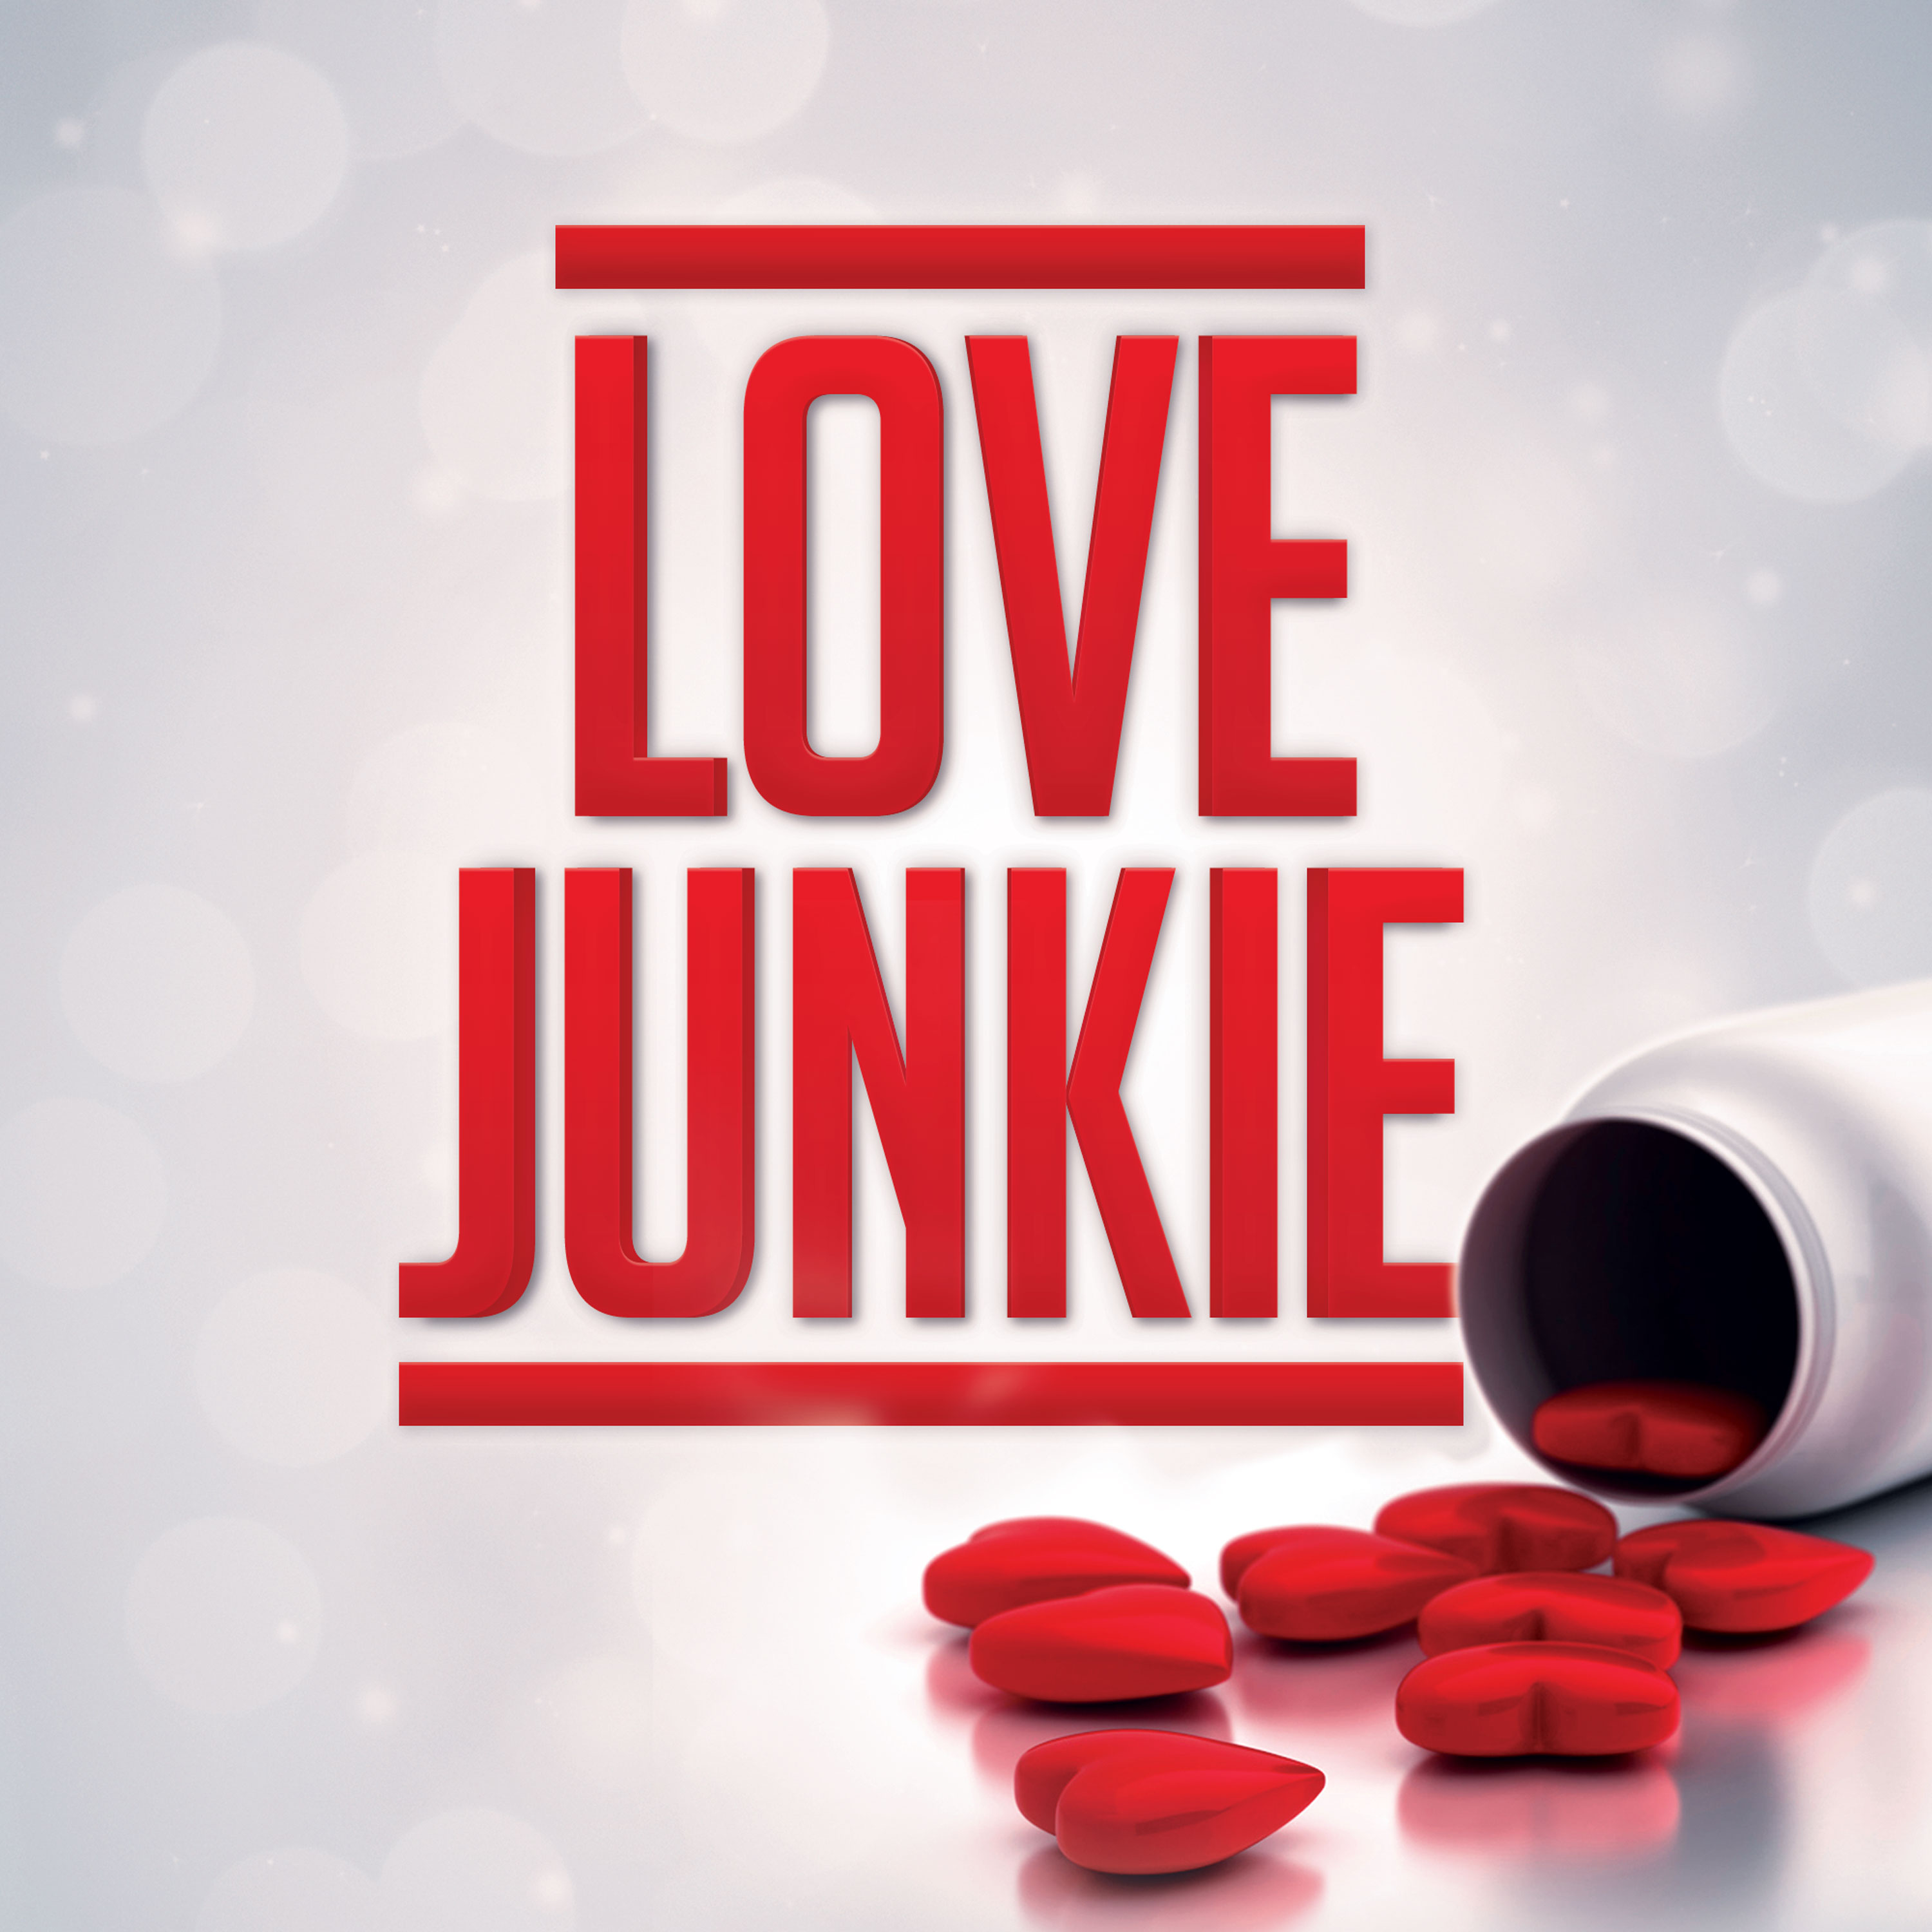 Love Junkie: Help for the Relationship Obsessed, Love Addicted, & Codependent - #2: How to Make a Family Support Plan